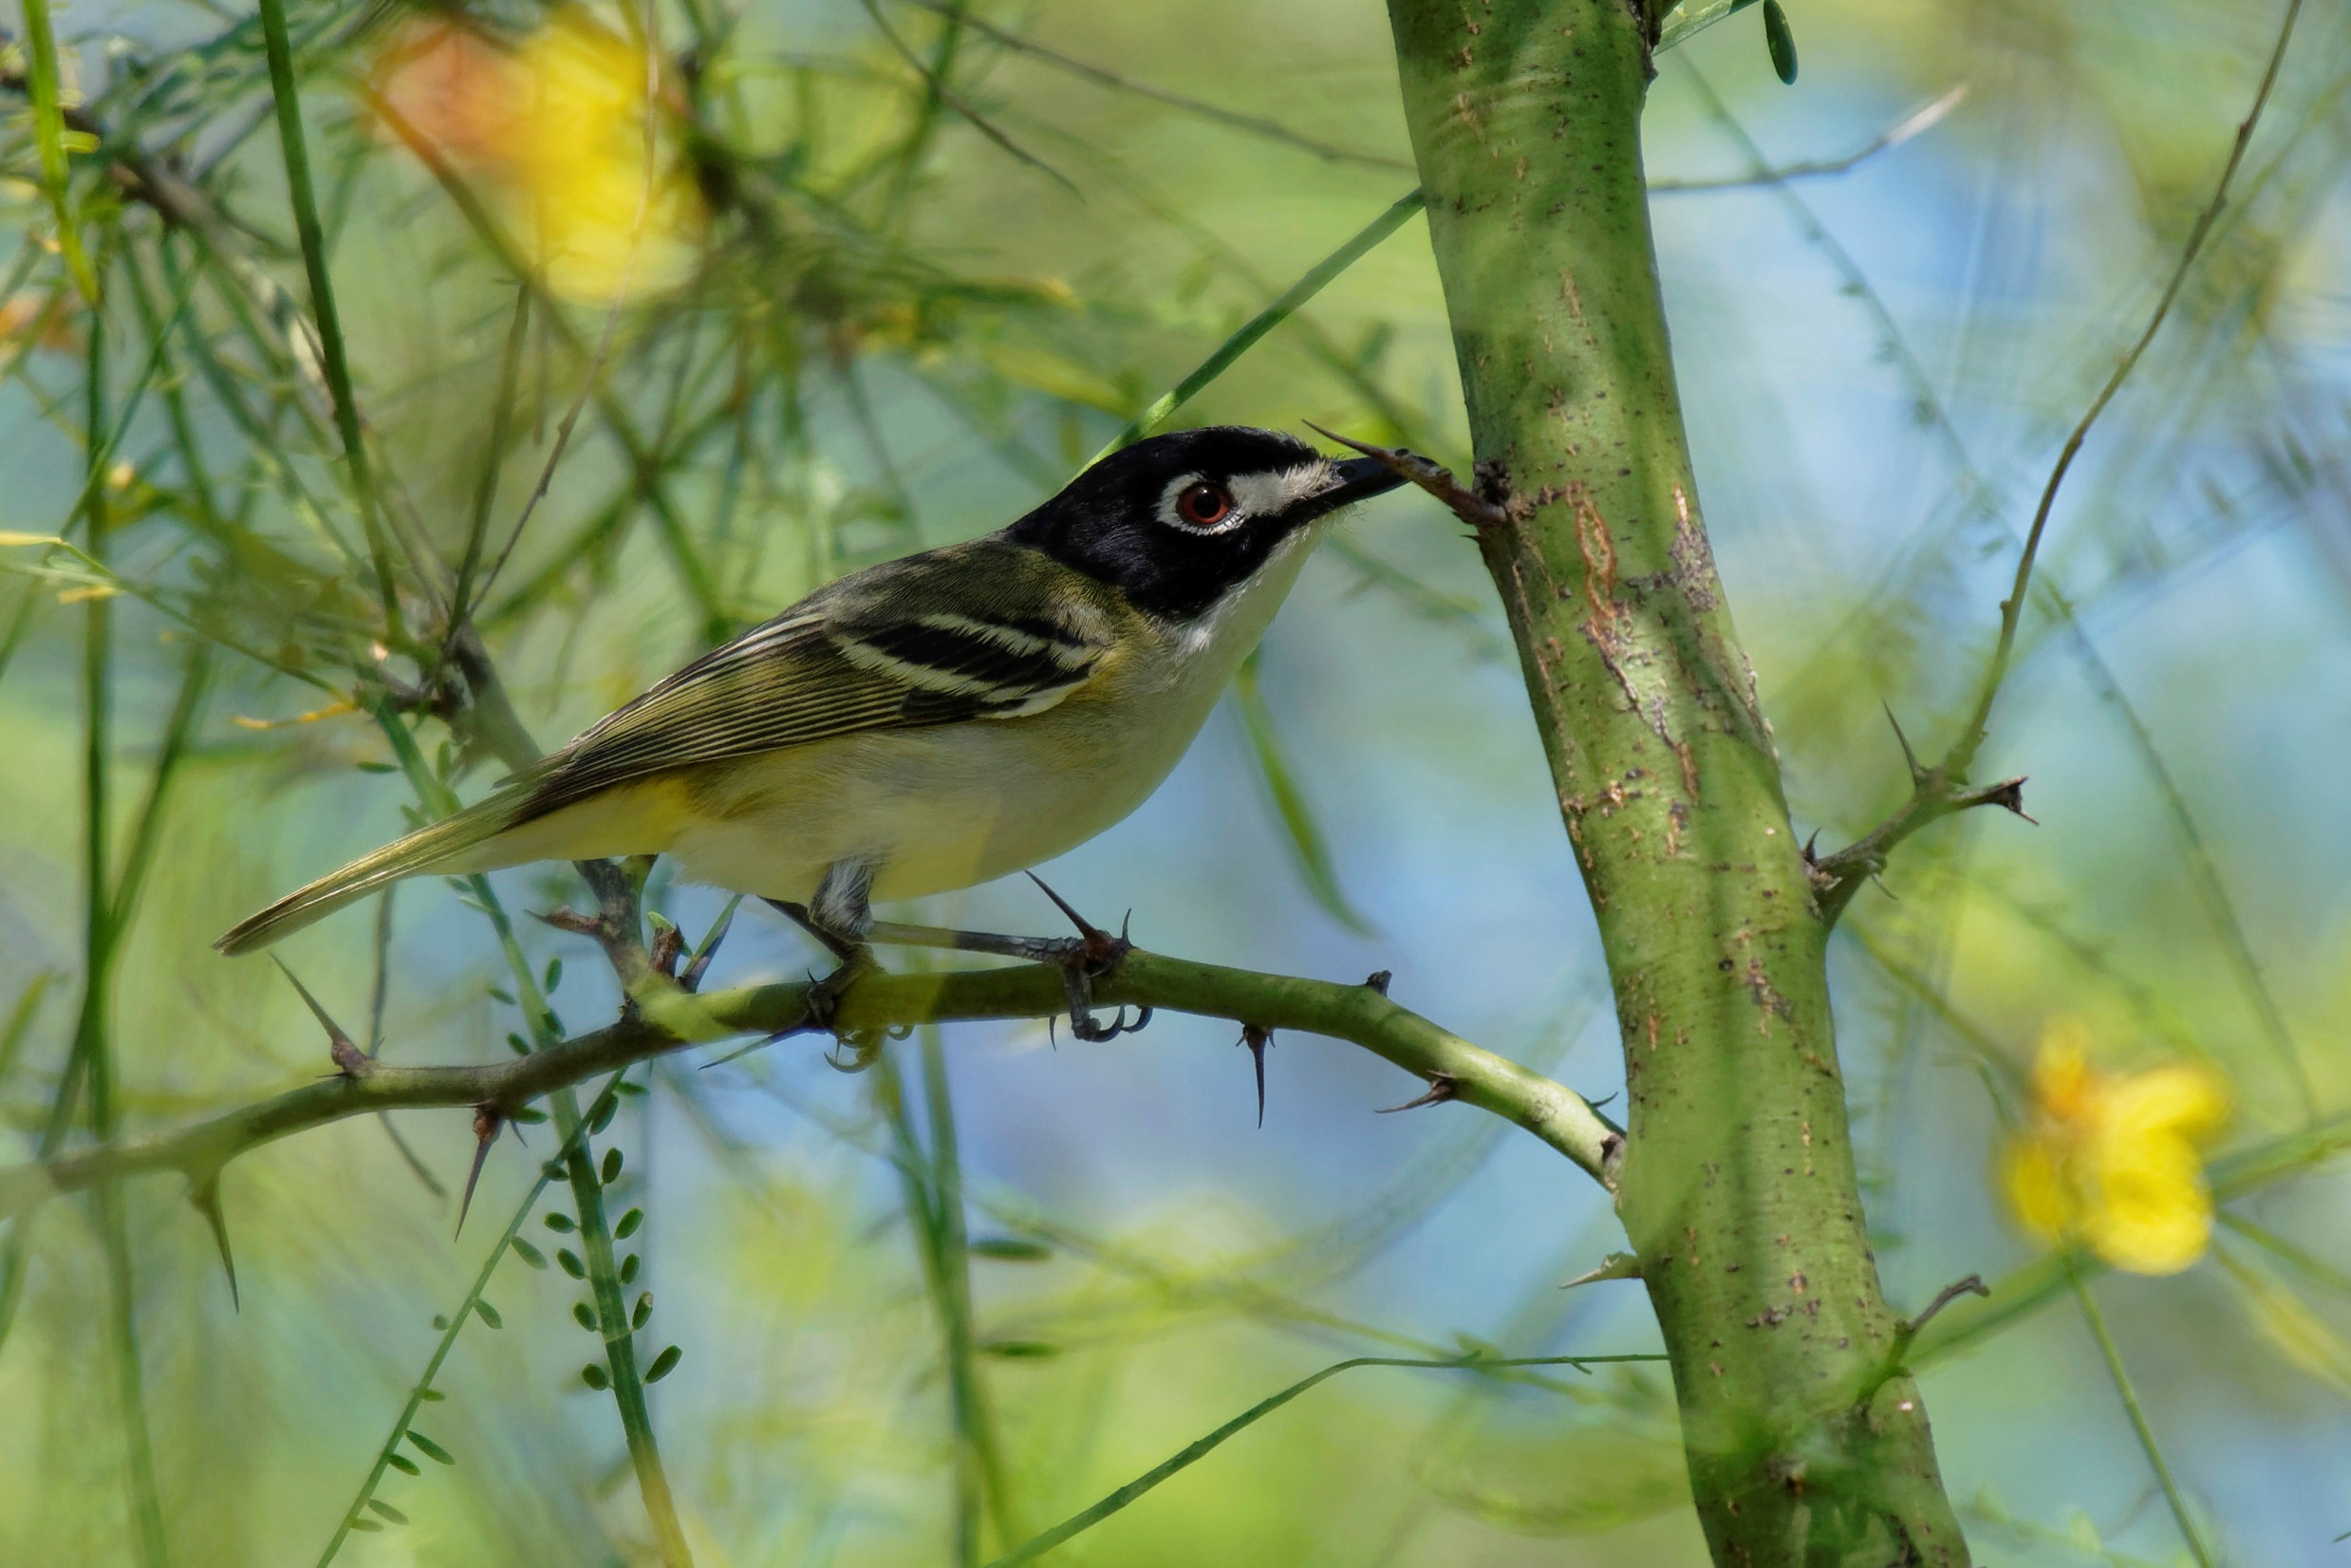 Species: Black-capped Vireo Photo Credit: Dina Perry Date: May 2018 Location: Confluence Park